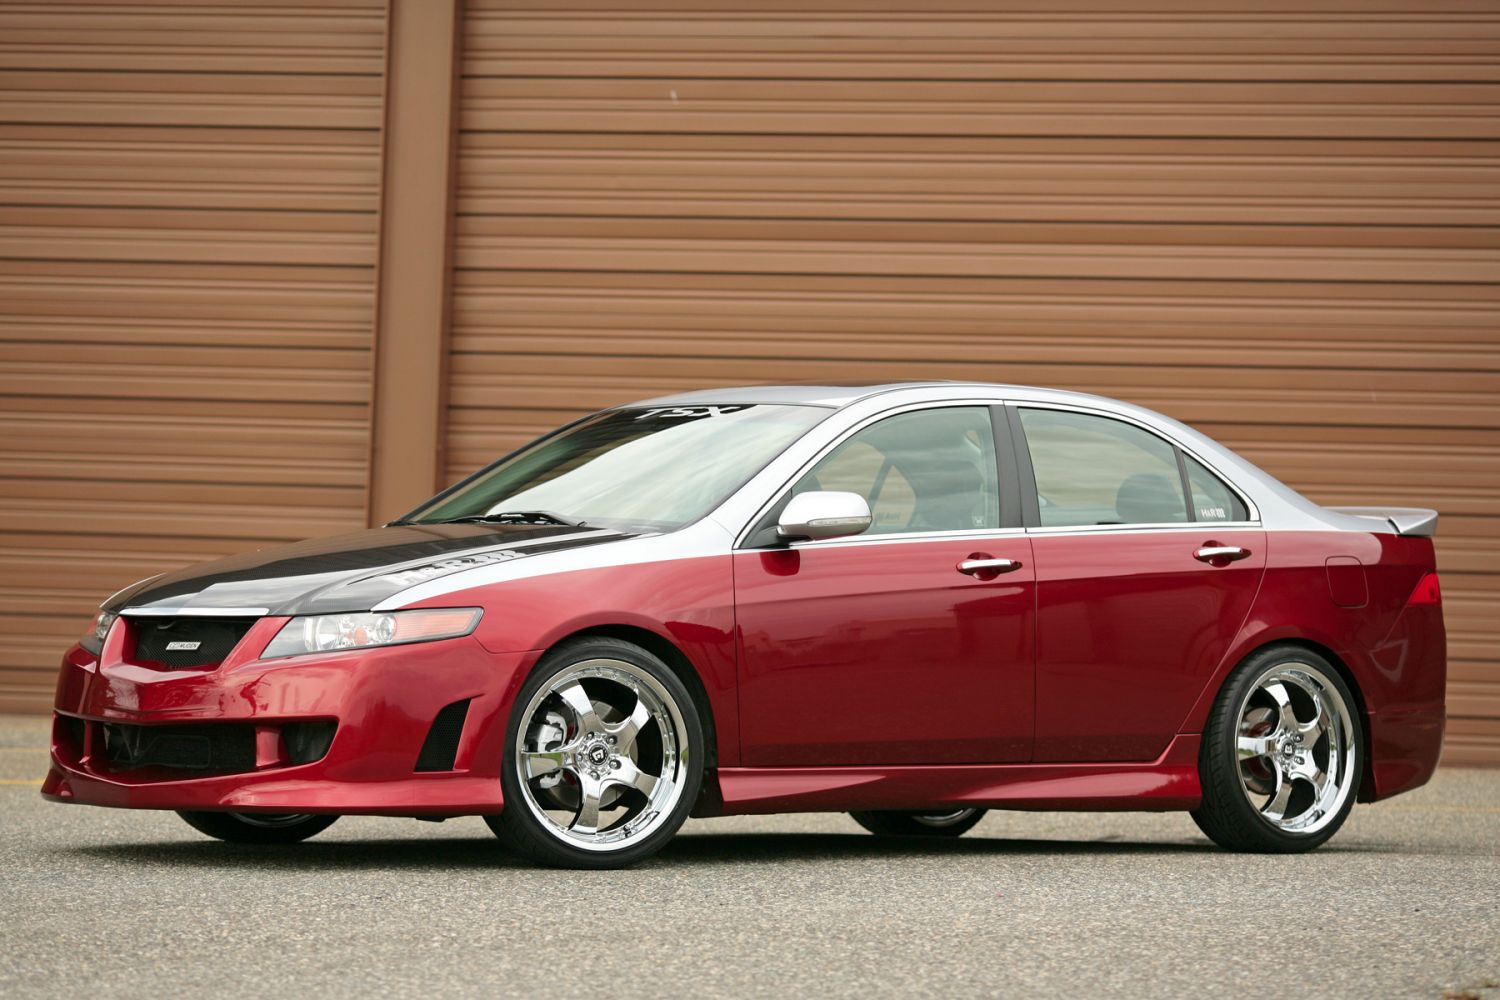 H&R Acura TSX Habanero Project | H&R Special Springs, LP.